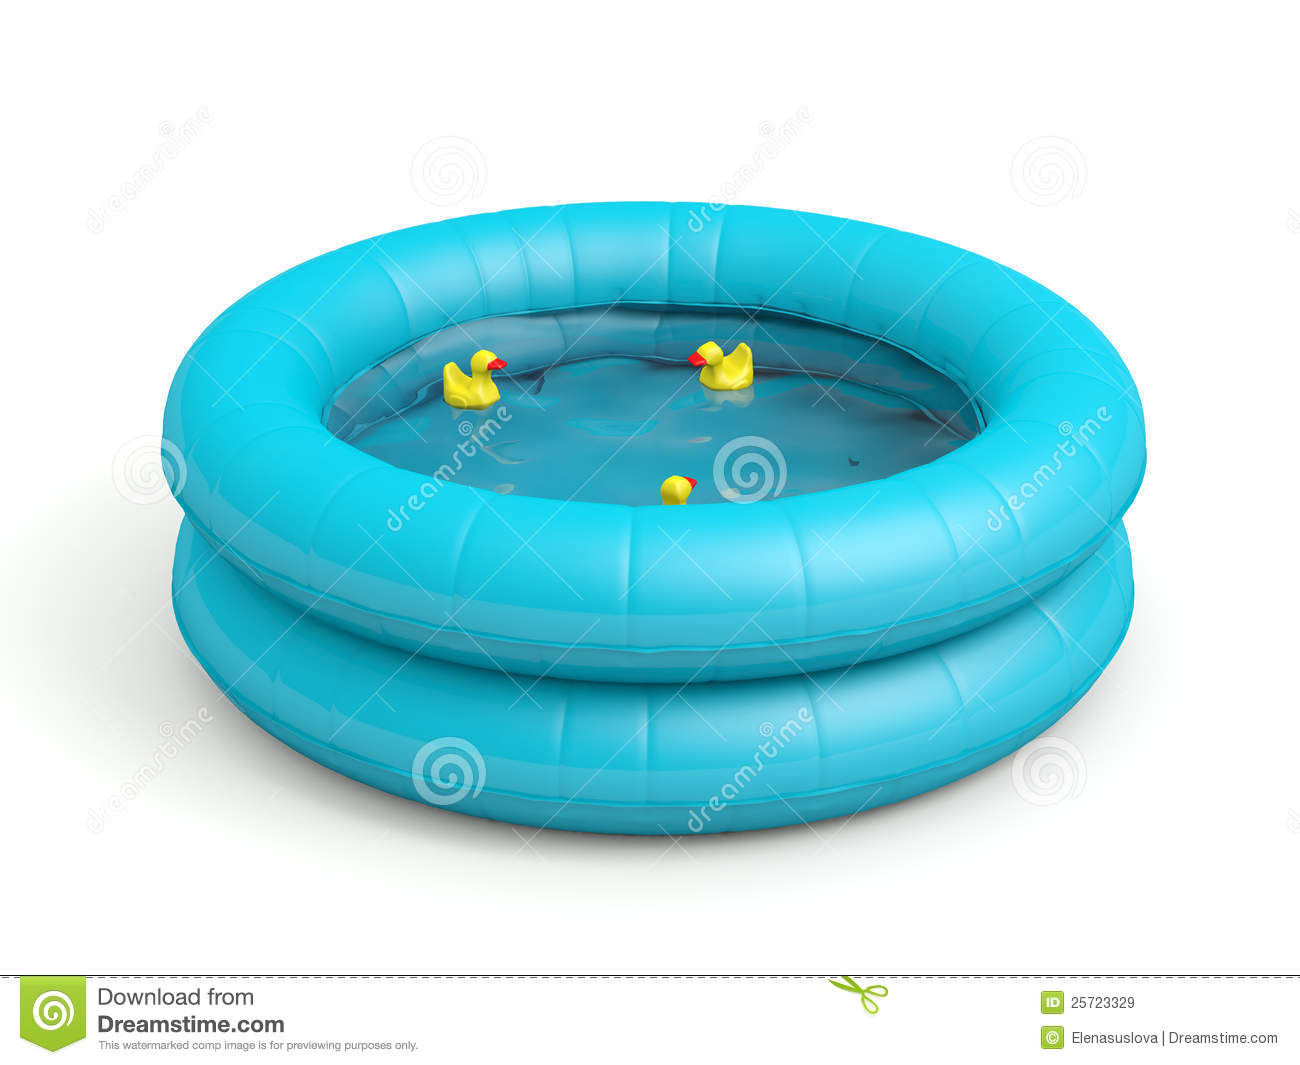 Air Mattress Blower Swimming Pool With Toy Ducks Royalty Free Stock Images - Image ...